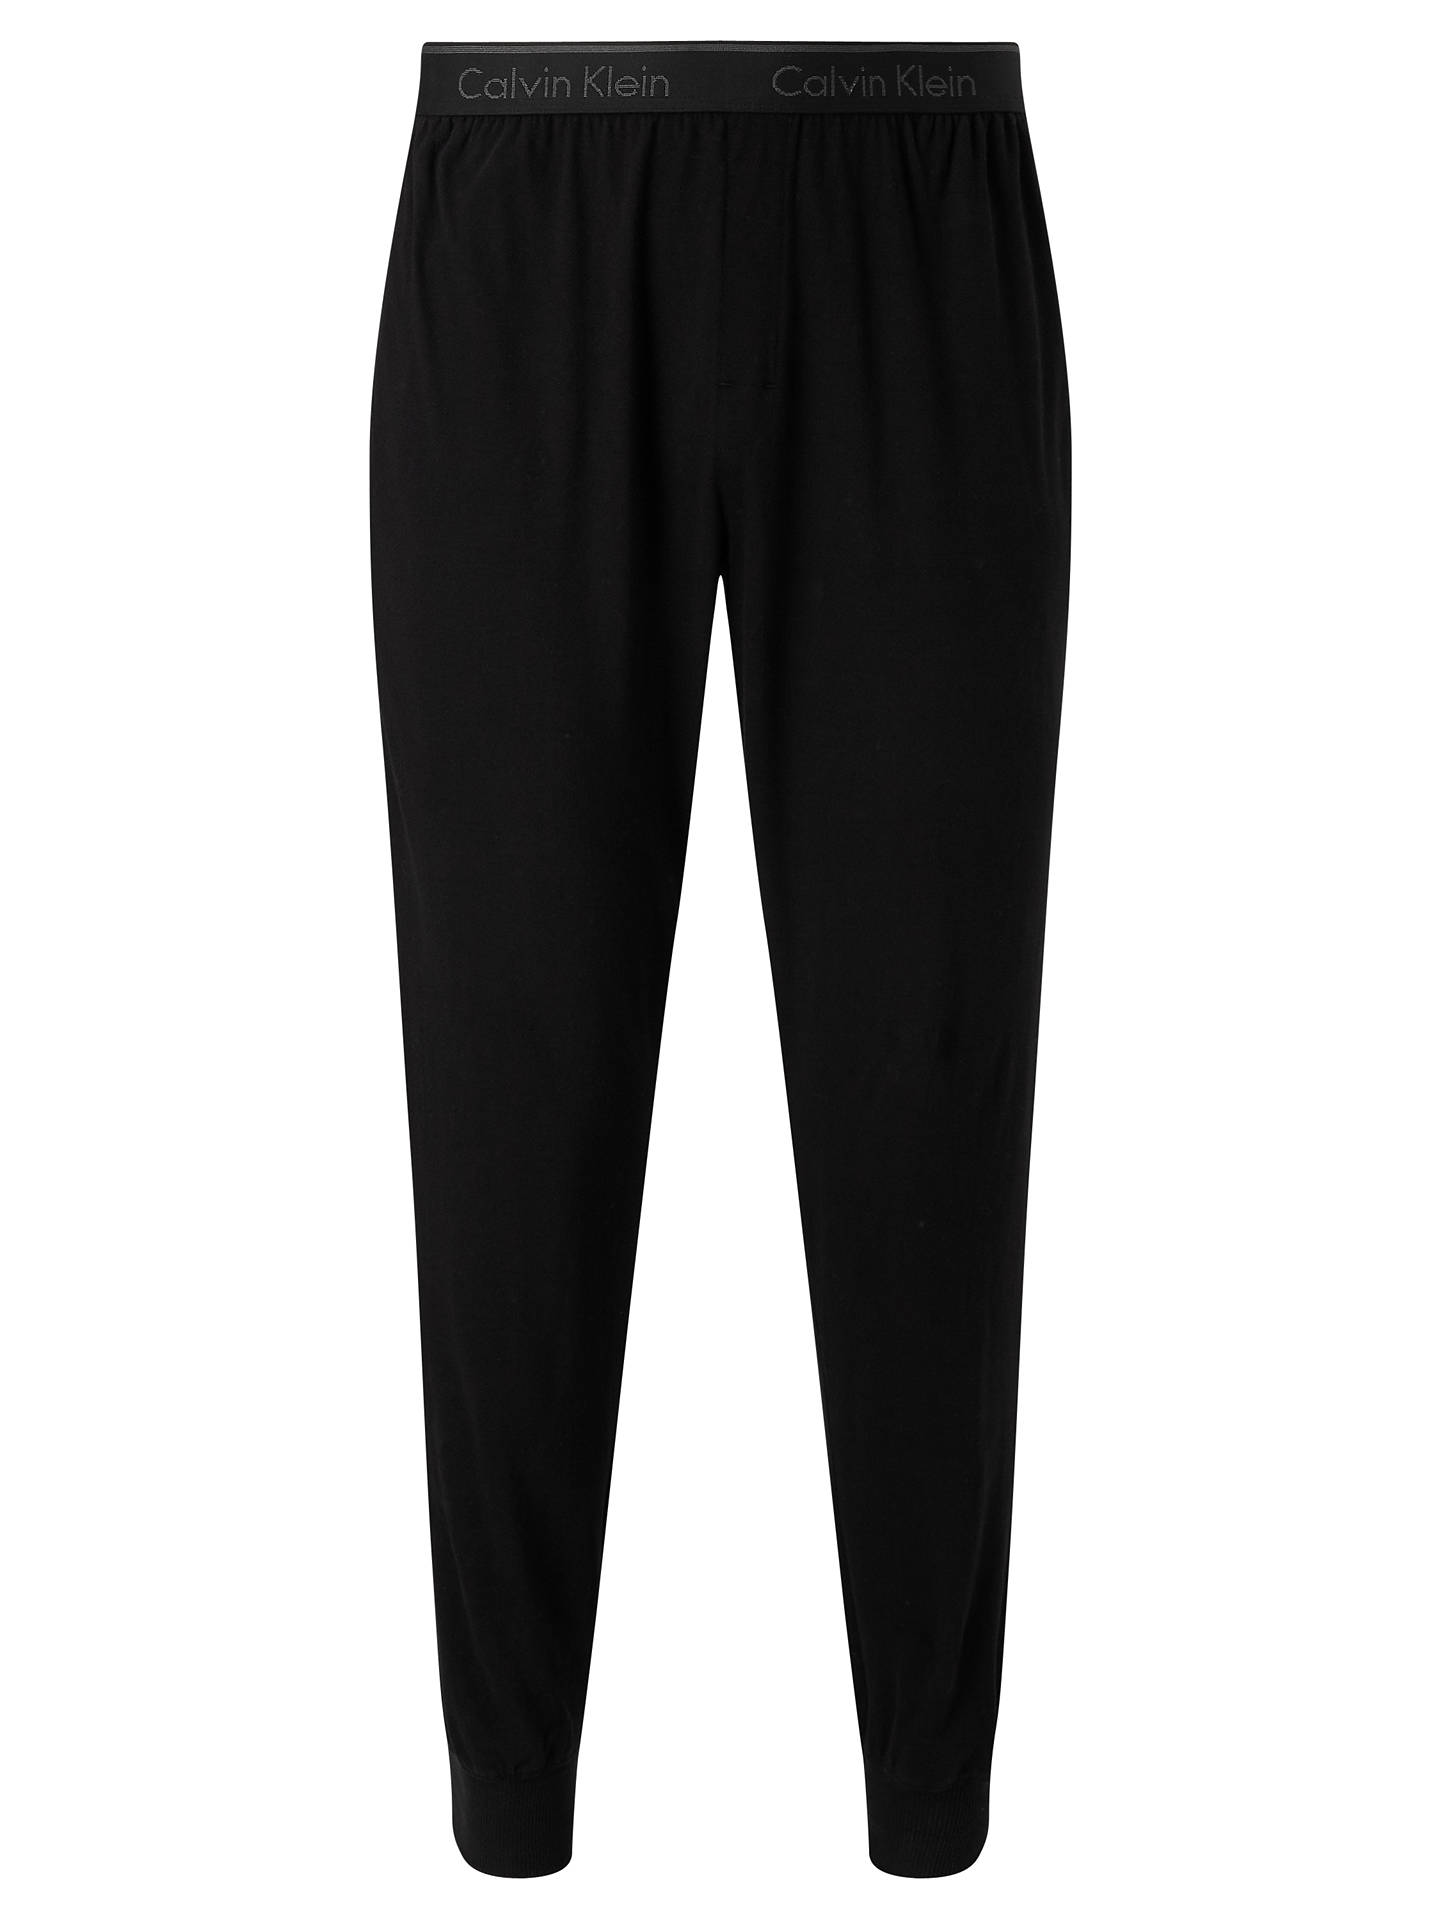 Where can you buy 'miss sexy' trousers in northampton?